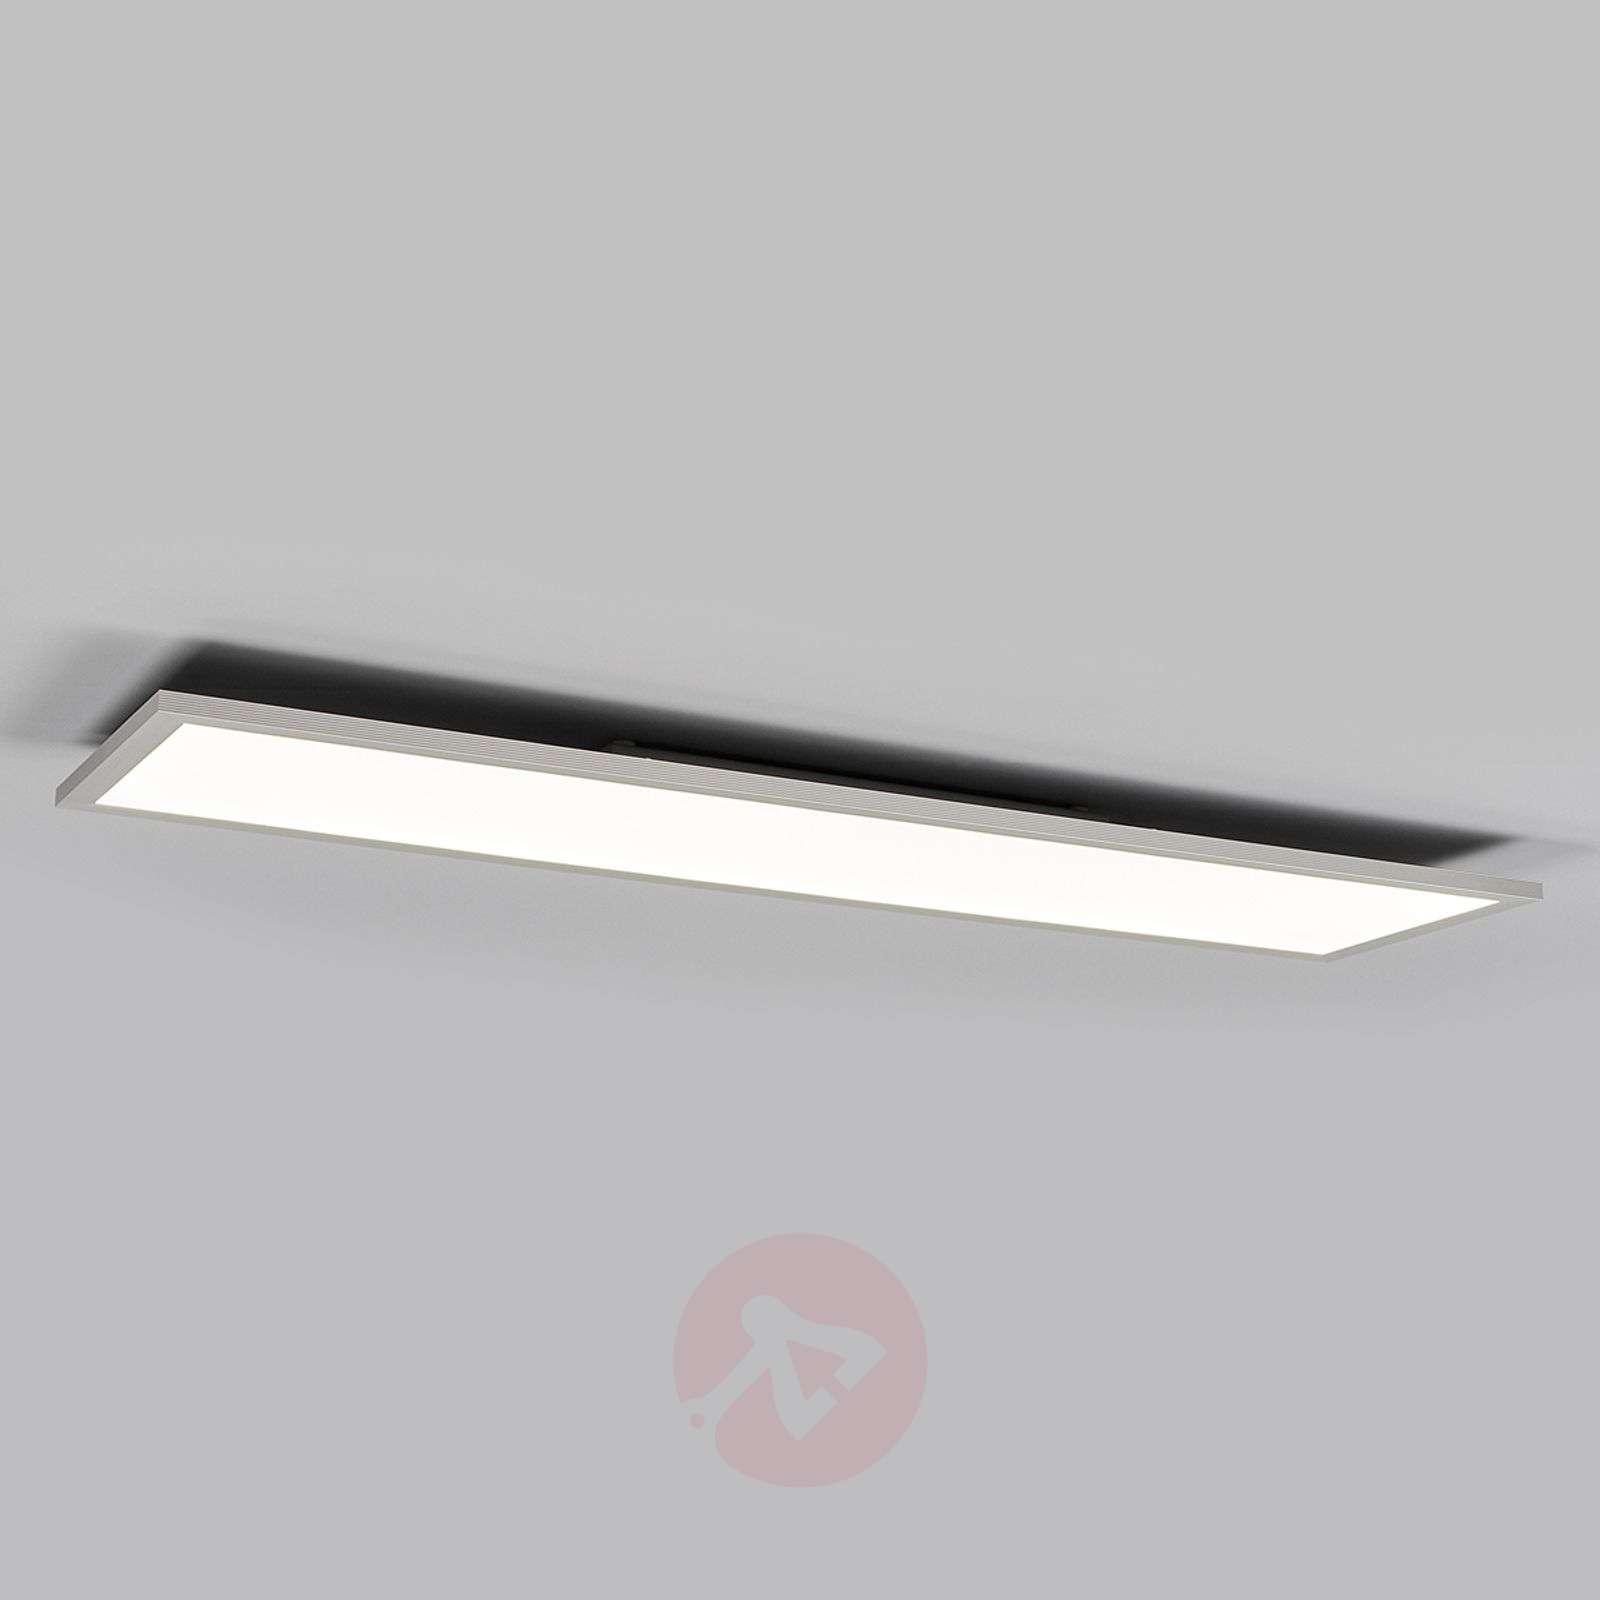 Universeel LED paneel All in one, BAP, daglicht-3002138-07